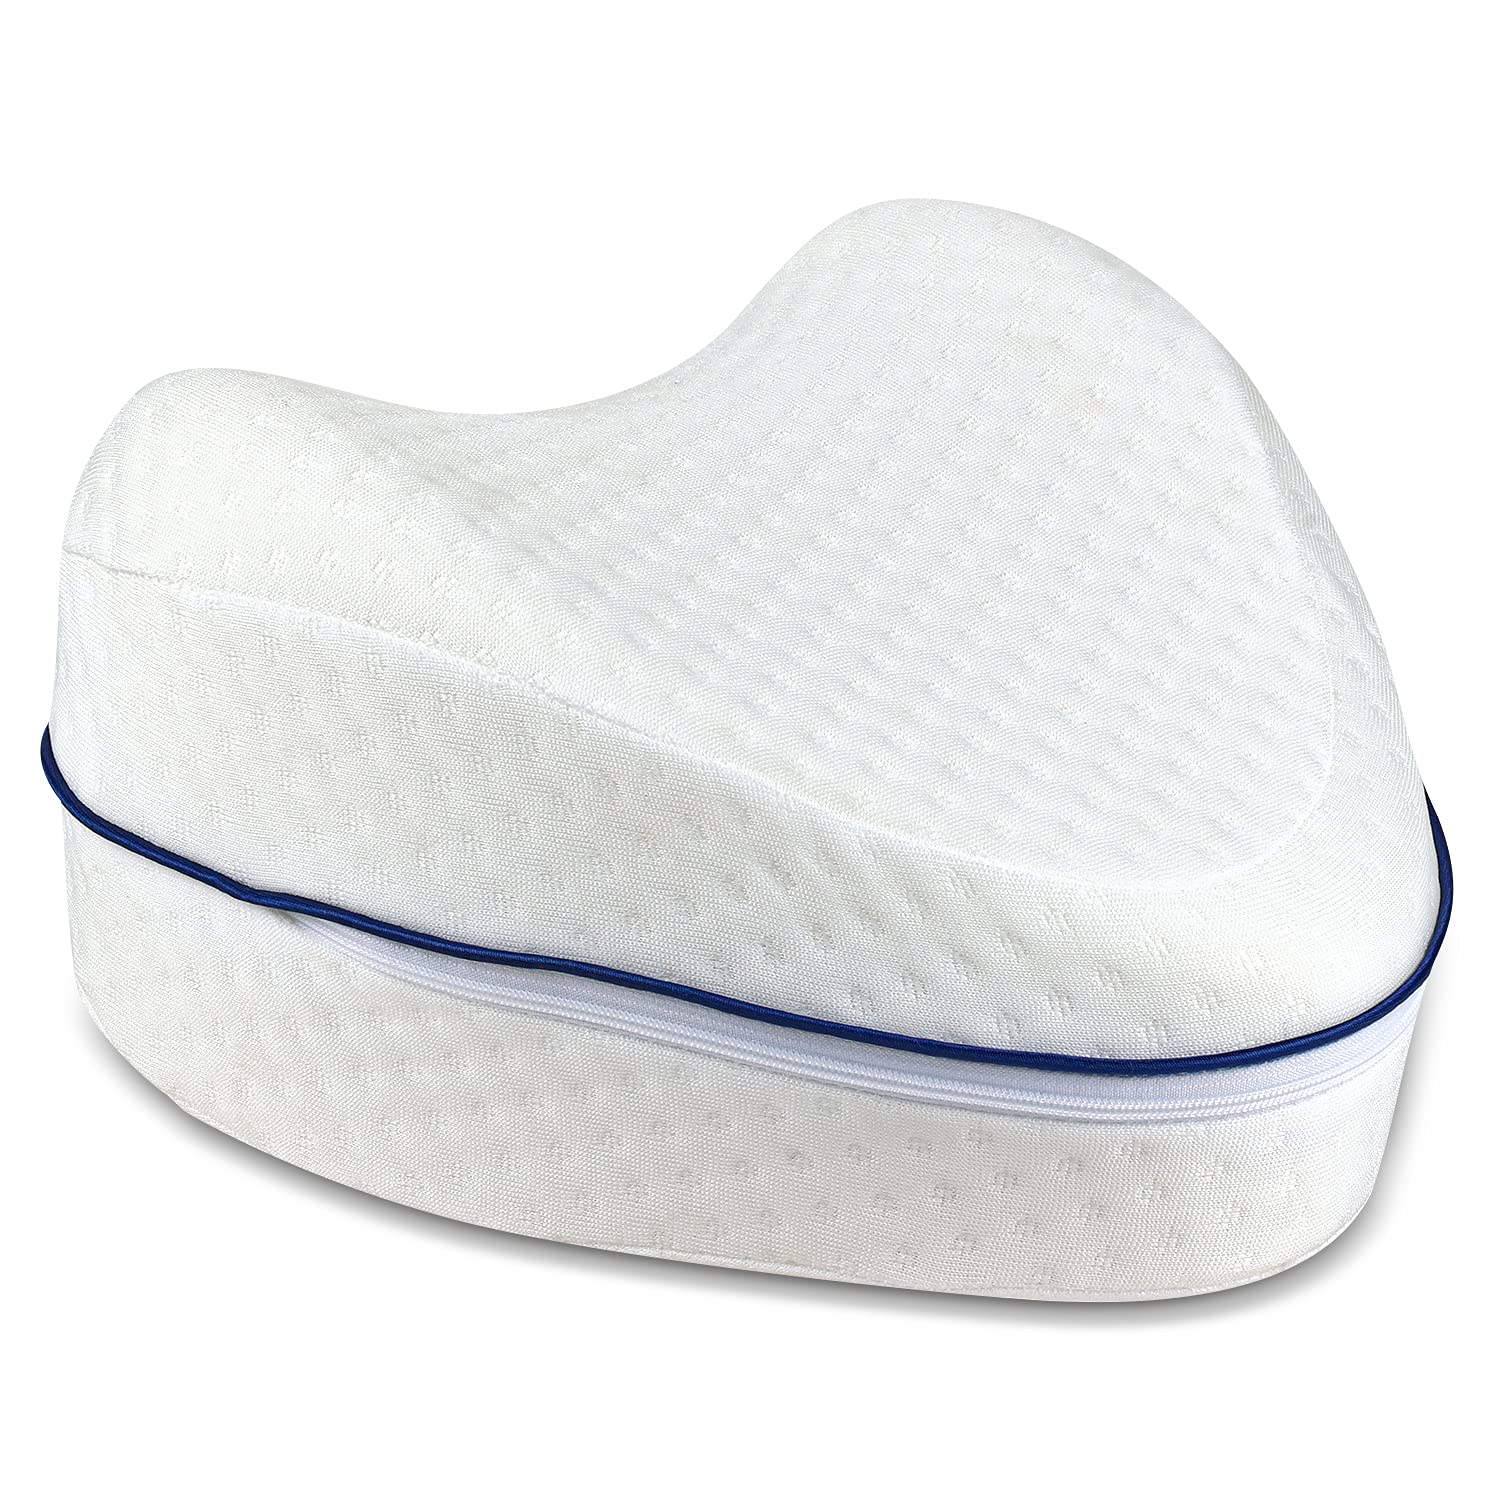 Leg Pillow, Knee Memory Foam Side Pillow, Knee Orthopedic Pillow Joint Pain and Sciatica Relief, Pregnancy Leg Position Pillow Provides Support & Comfort for Side Sleeping